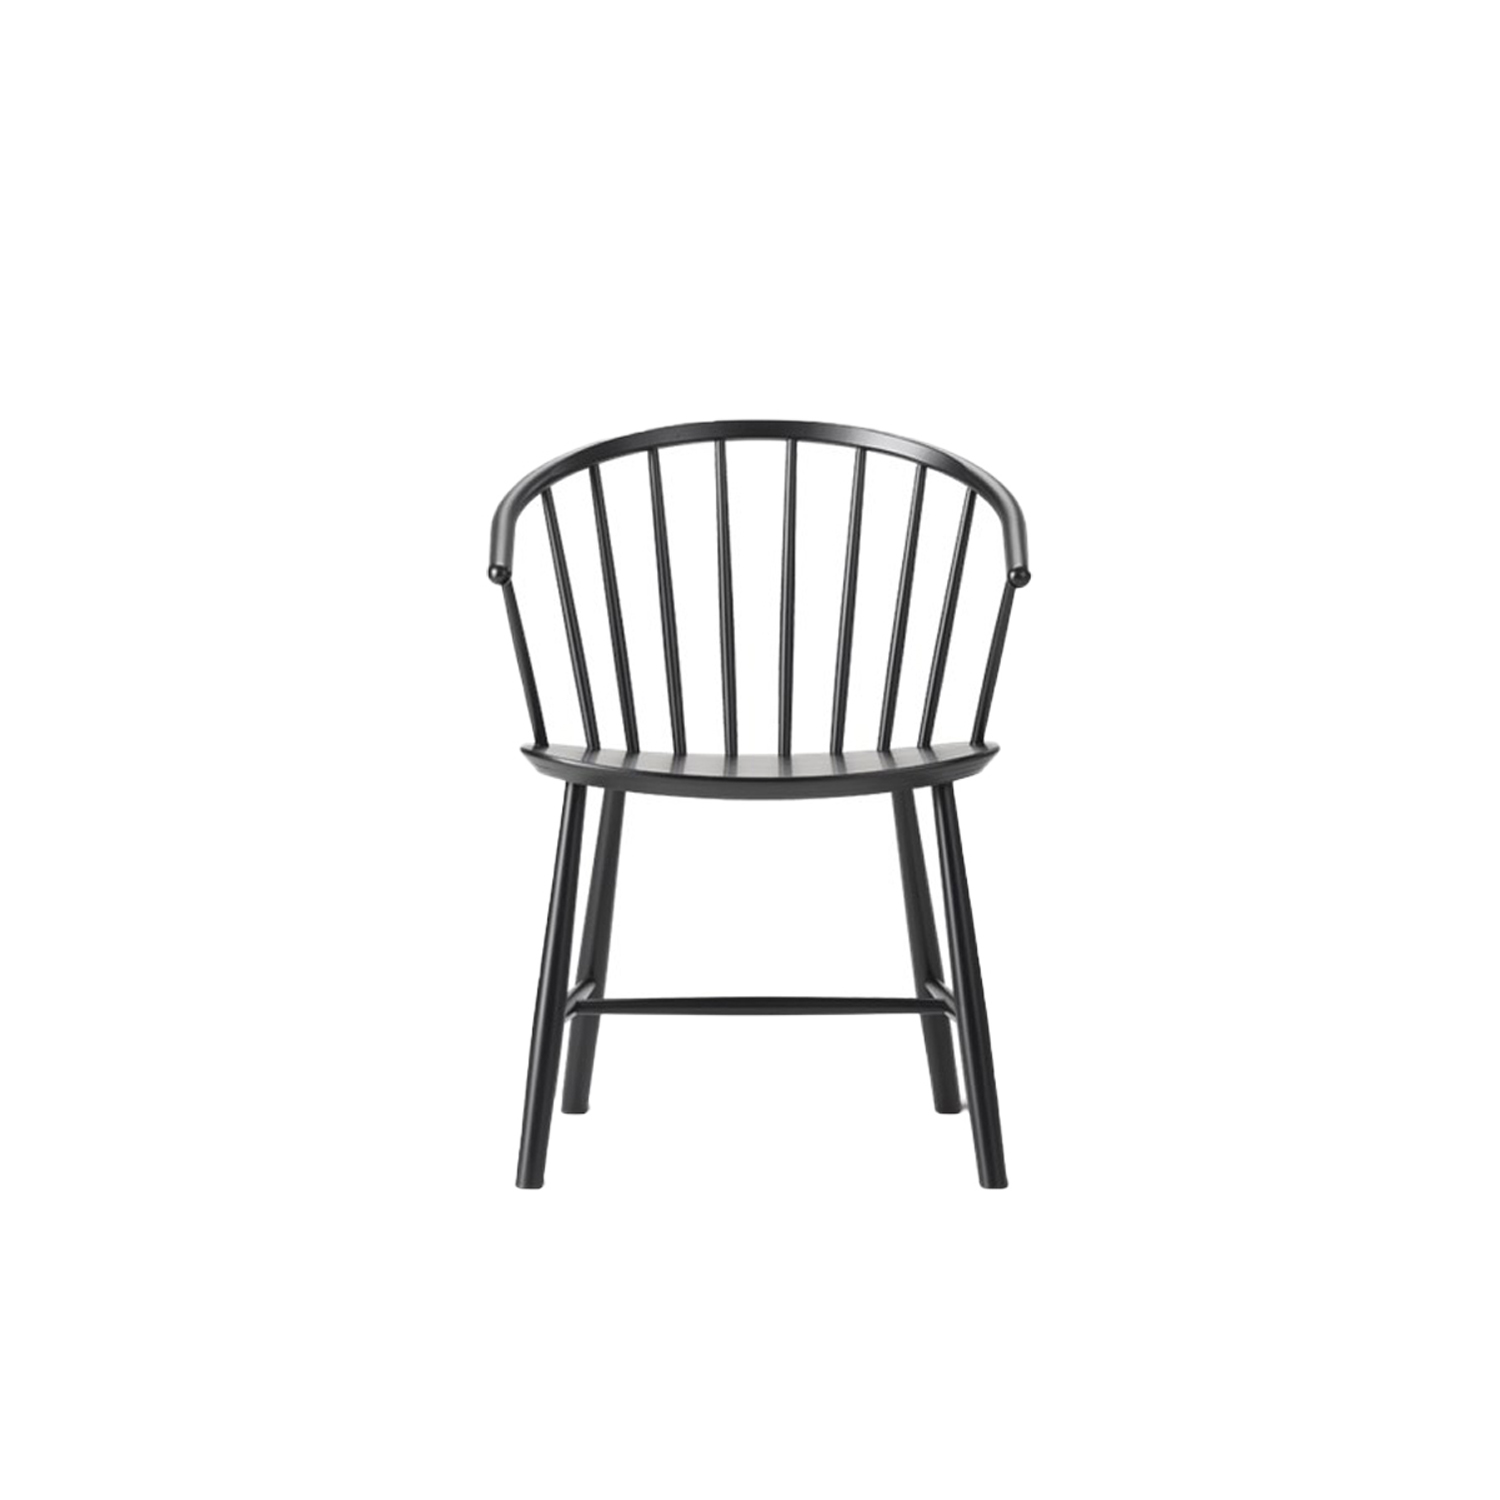 J64 armchair - Johansson's chair draws a parallel to traditional Windsor, as well as Nordic folk furniture. The curved chair with sloping arms works as a comfortable dining chair, or a lounge chair facing a sofa. | Matter of Stuff